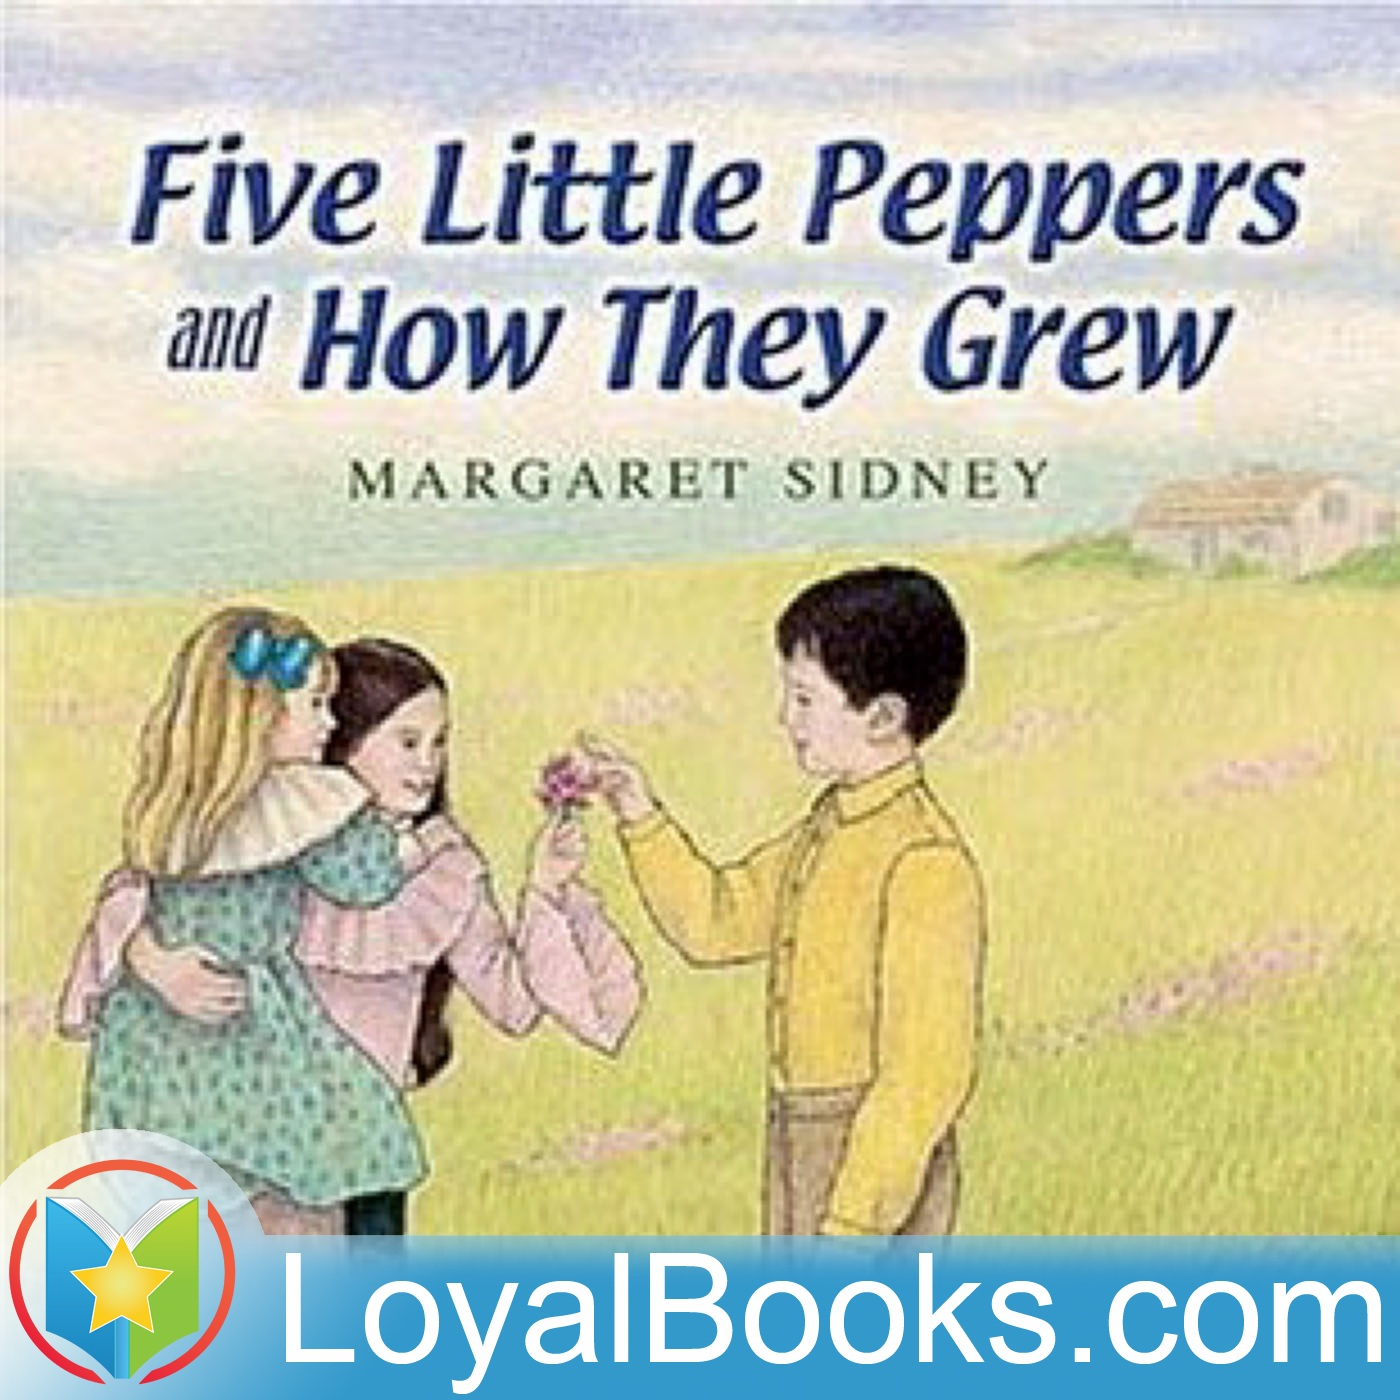 <![CDATA[Five Little Peppers and How They Grew by Margaret Sidney]]>